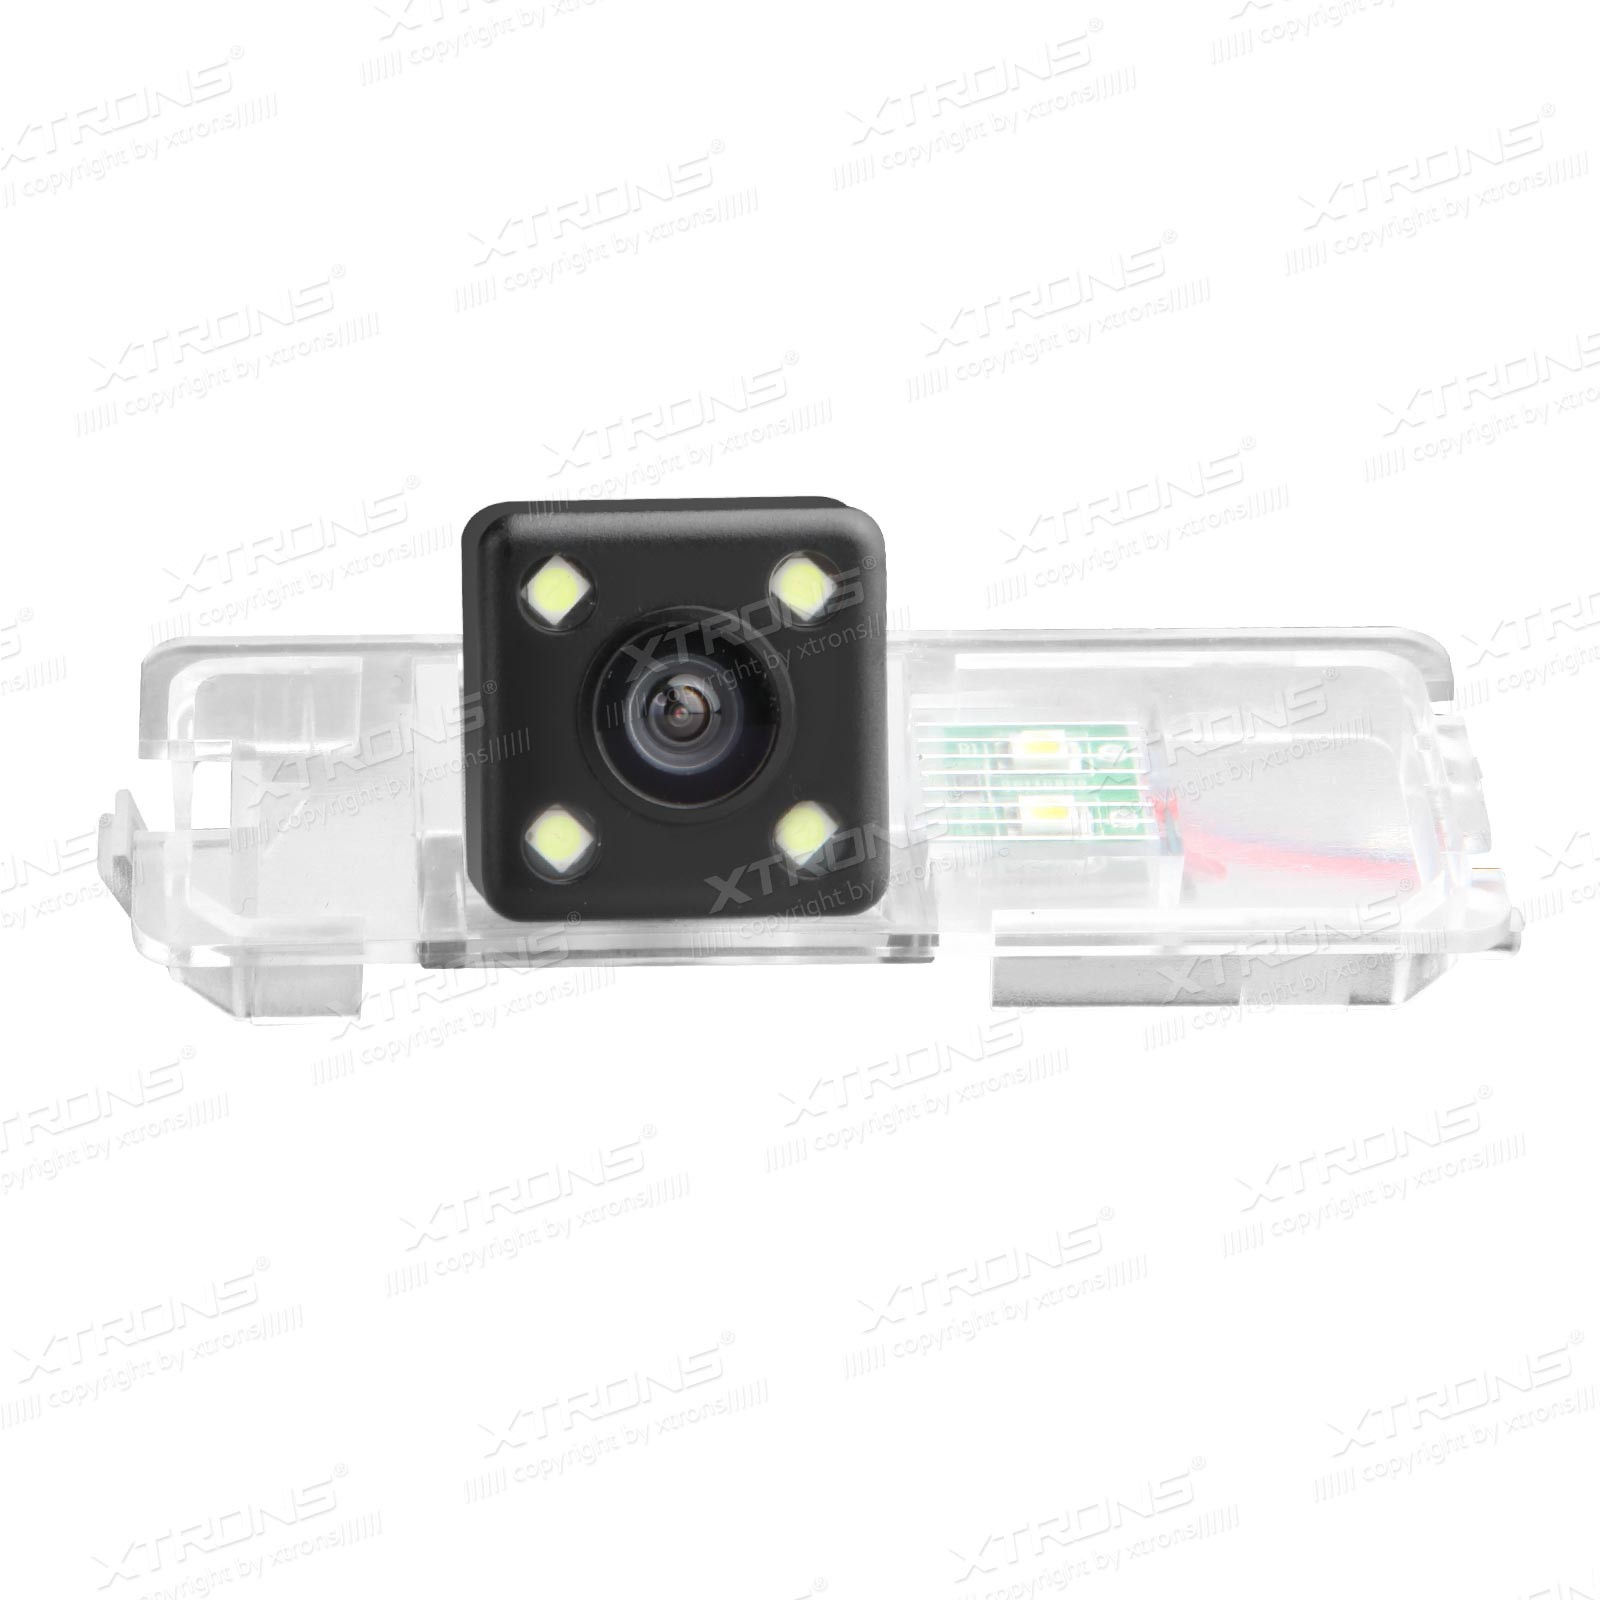 Car reversing camera Specially Designed for VW Polo/Passat CC/Golf/Bora